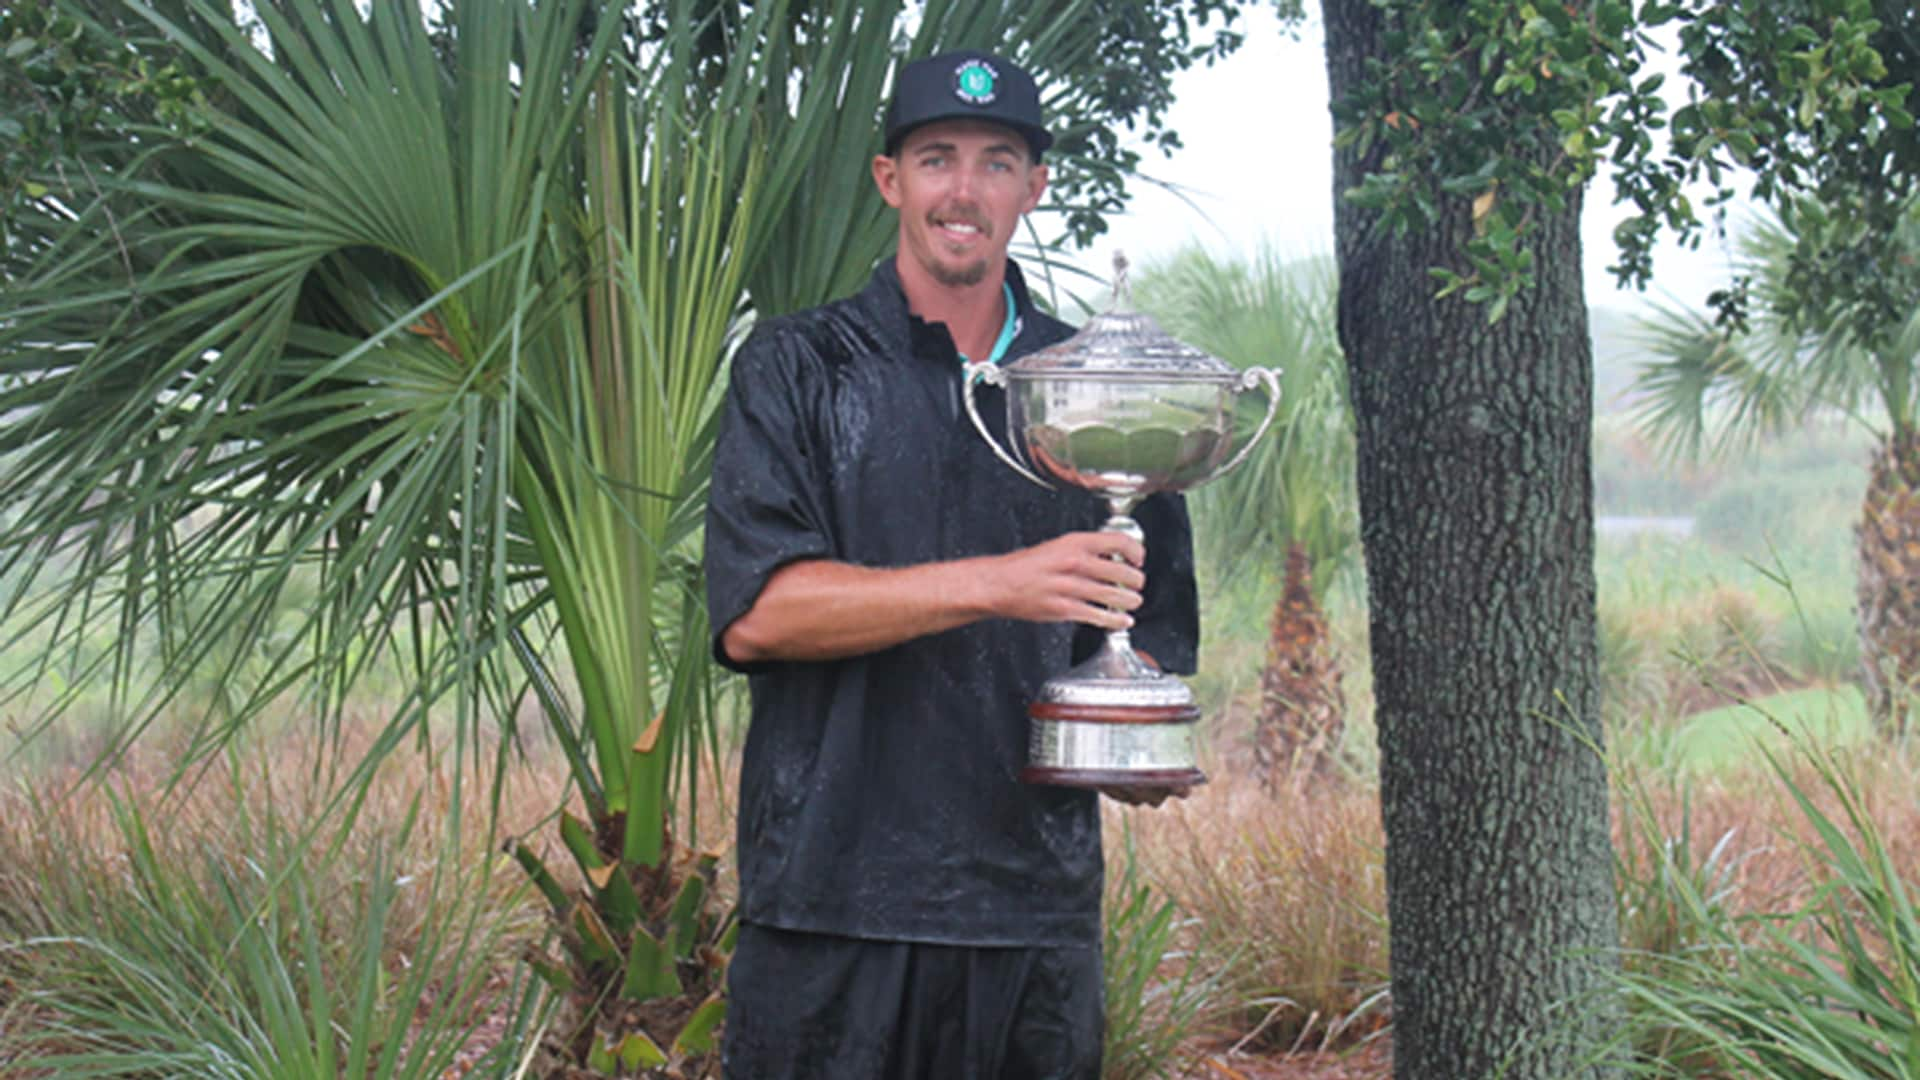 2018 Florida State Golf Association Mid-Amateur champion Marc Dull